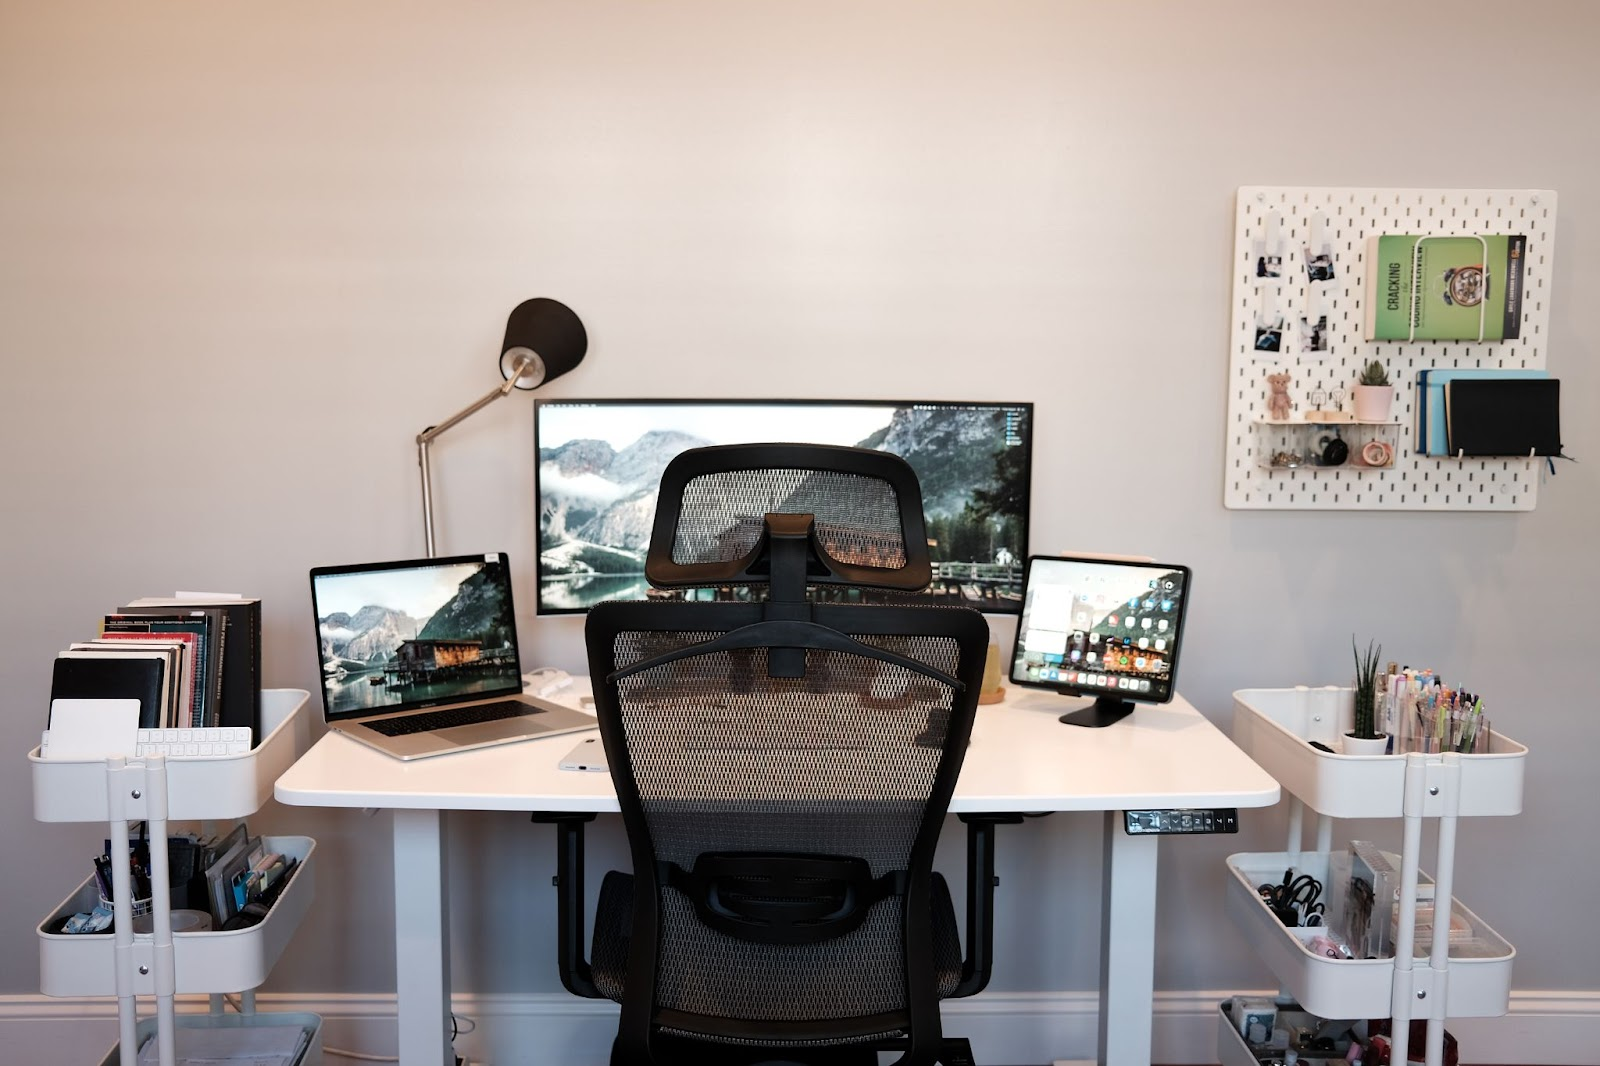 books, laptop, lamp, devices, and chair, in a workstation for animators